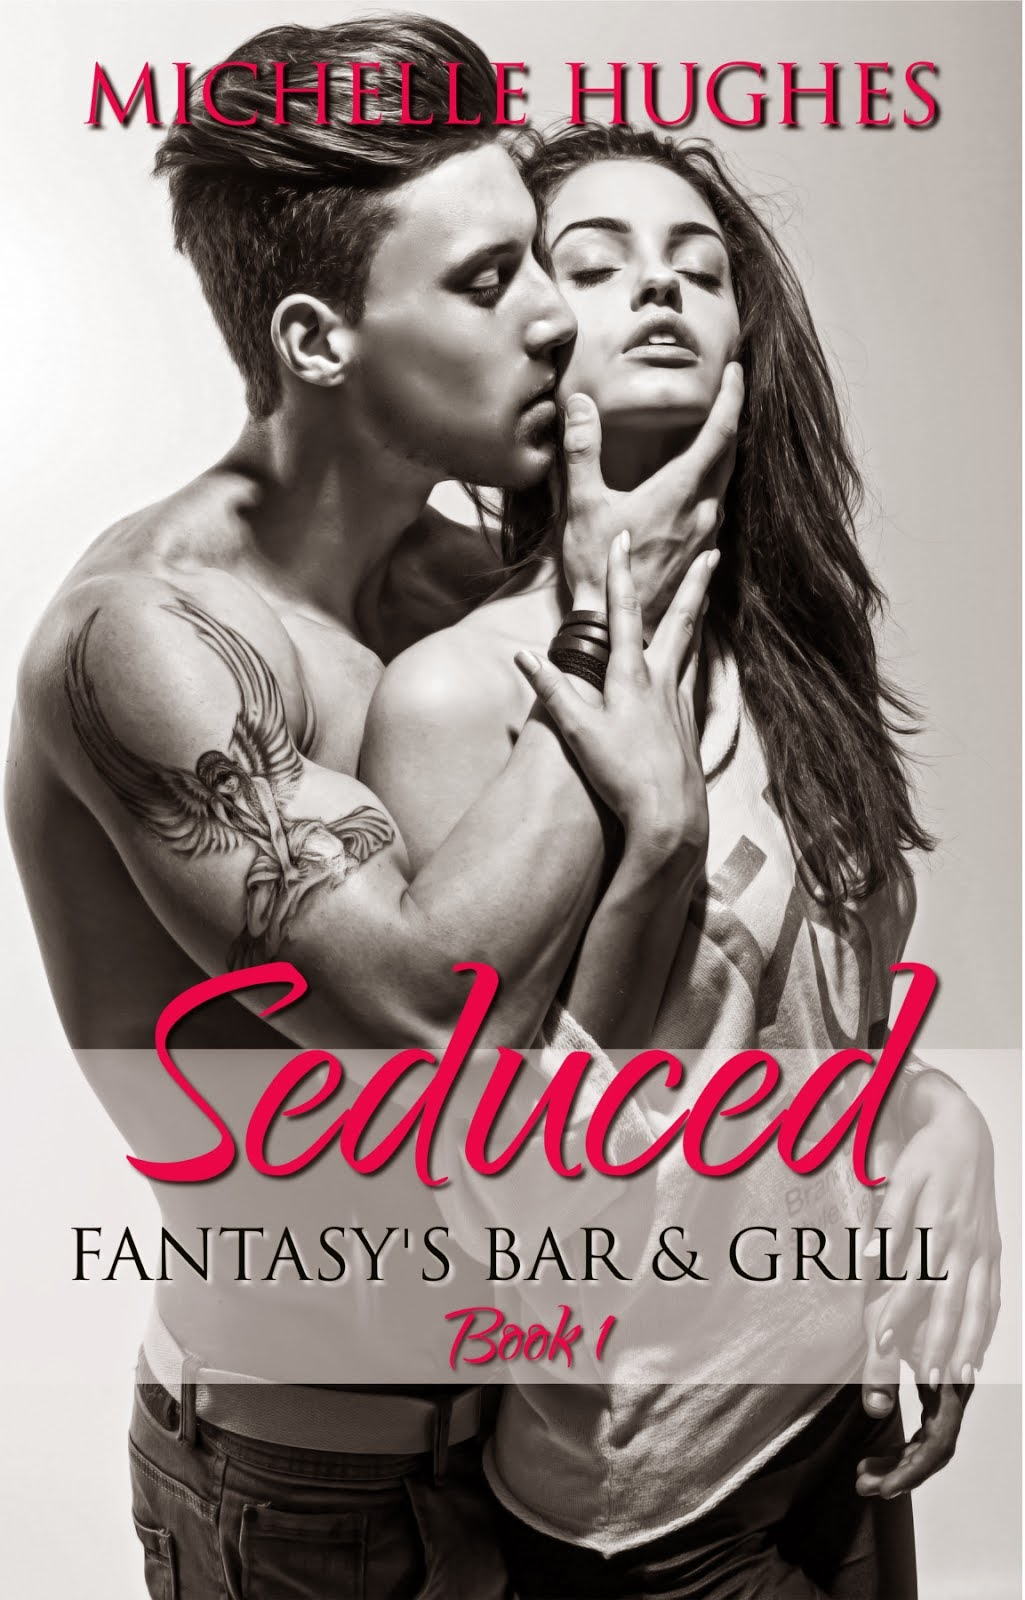 Seduced (Fantasy's Bar & Grill - Book One)